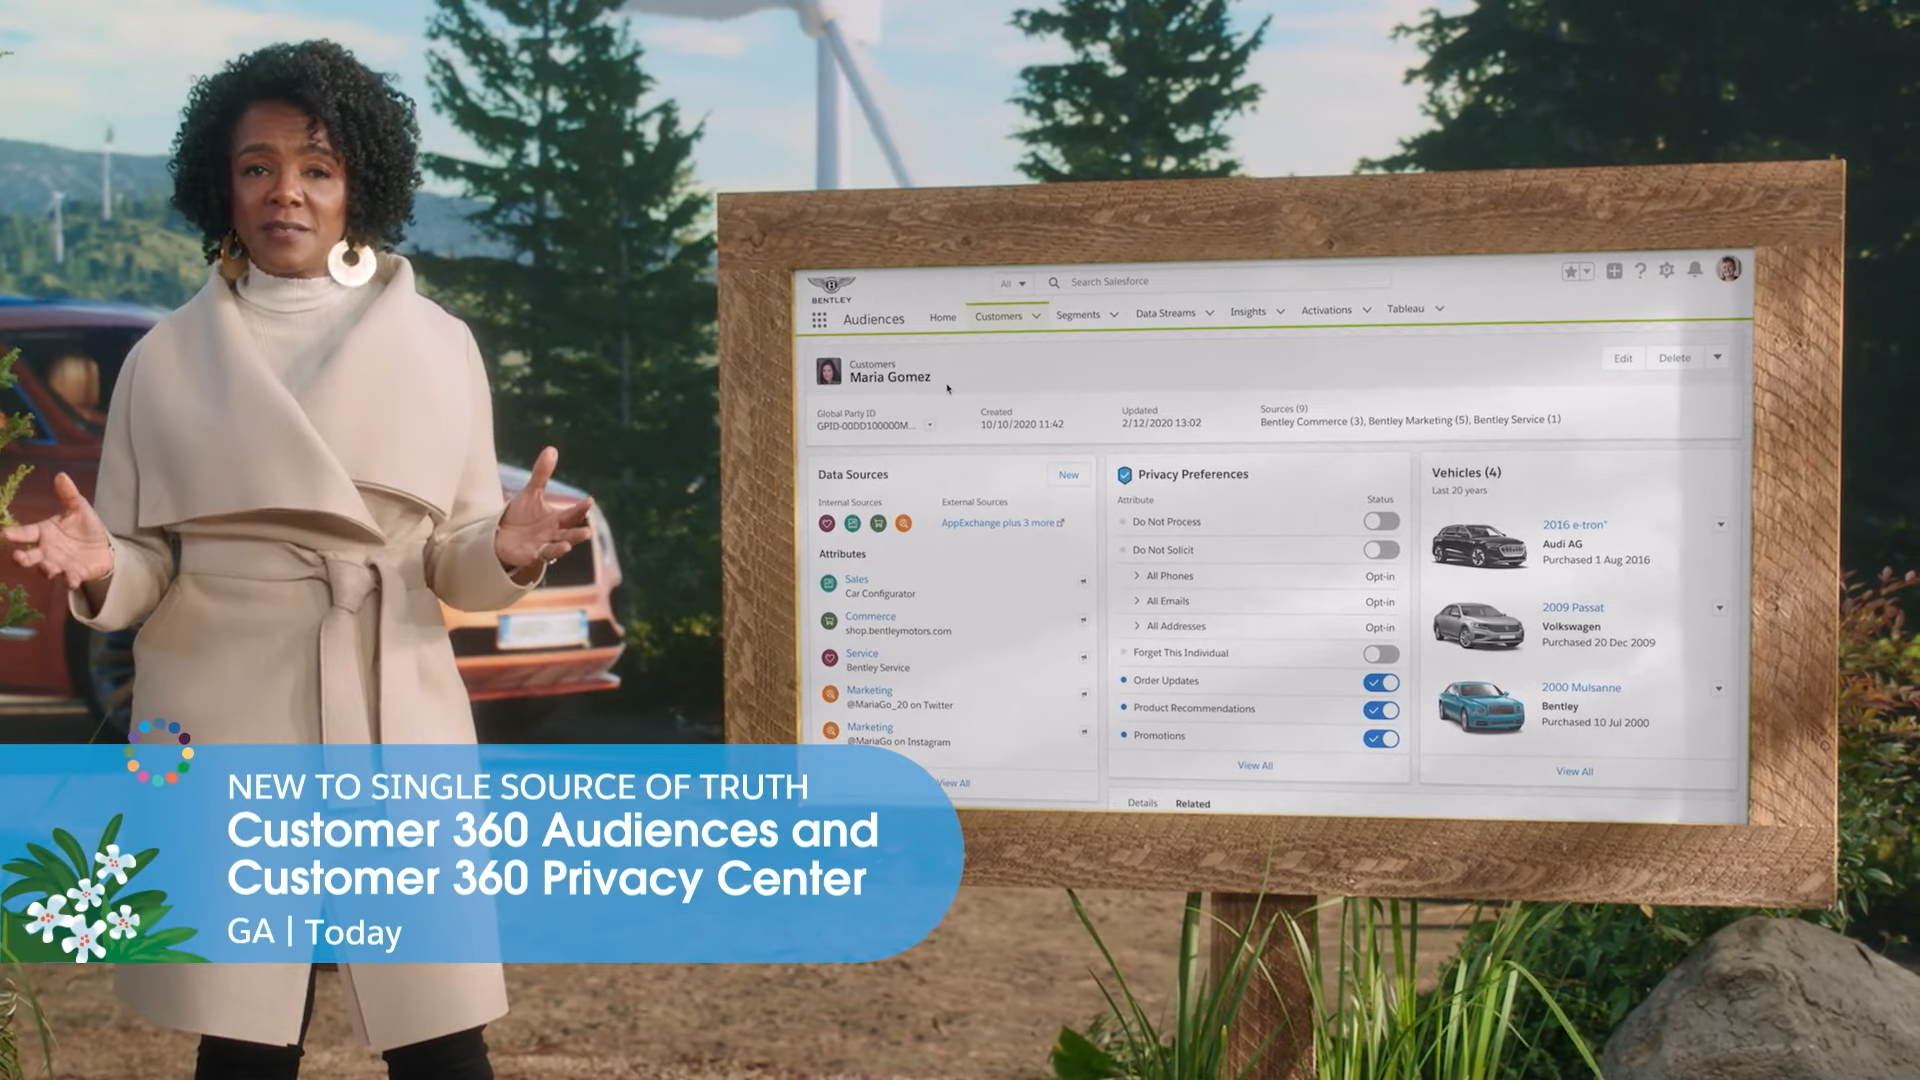 customer 360 audiences and customer 360 privacy center